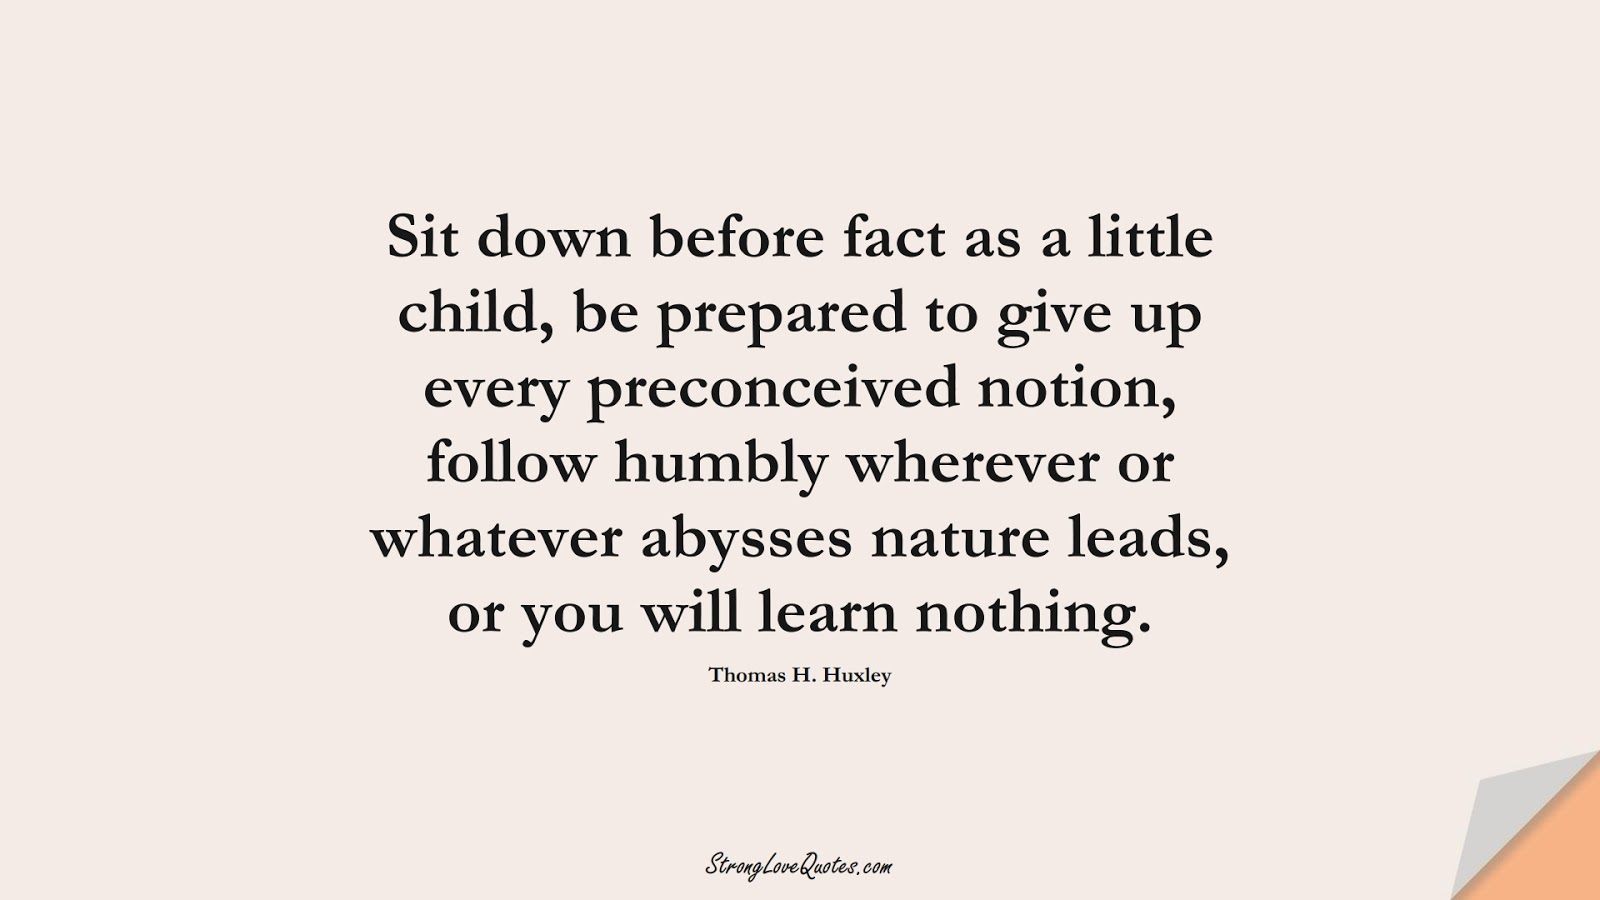 Sit down before fact as a little child, be prepared to give up every preconceived notion, follow humbly wherever or whatever abysses nature leads, or you will learn nothing. (Thomas H. Huxley);  #KnowledgeQuotes